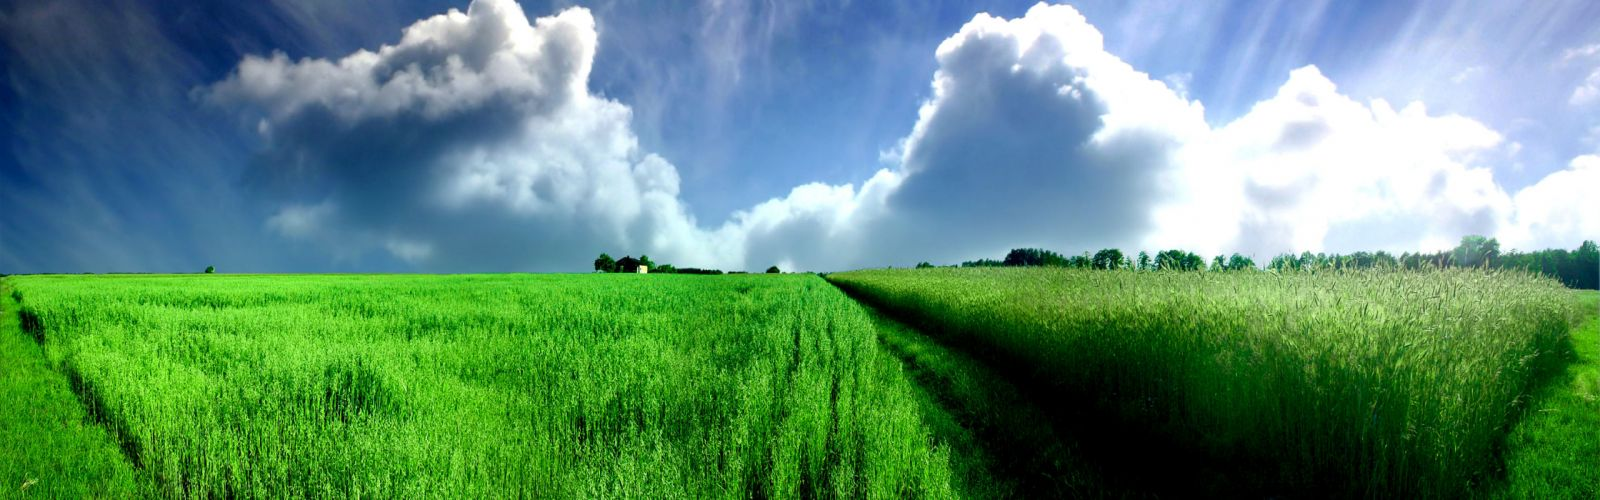 fields skyscapes wallpaper